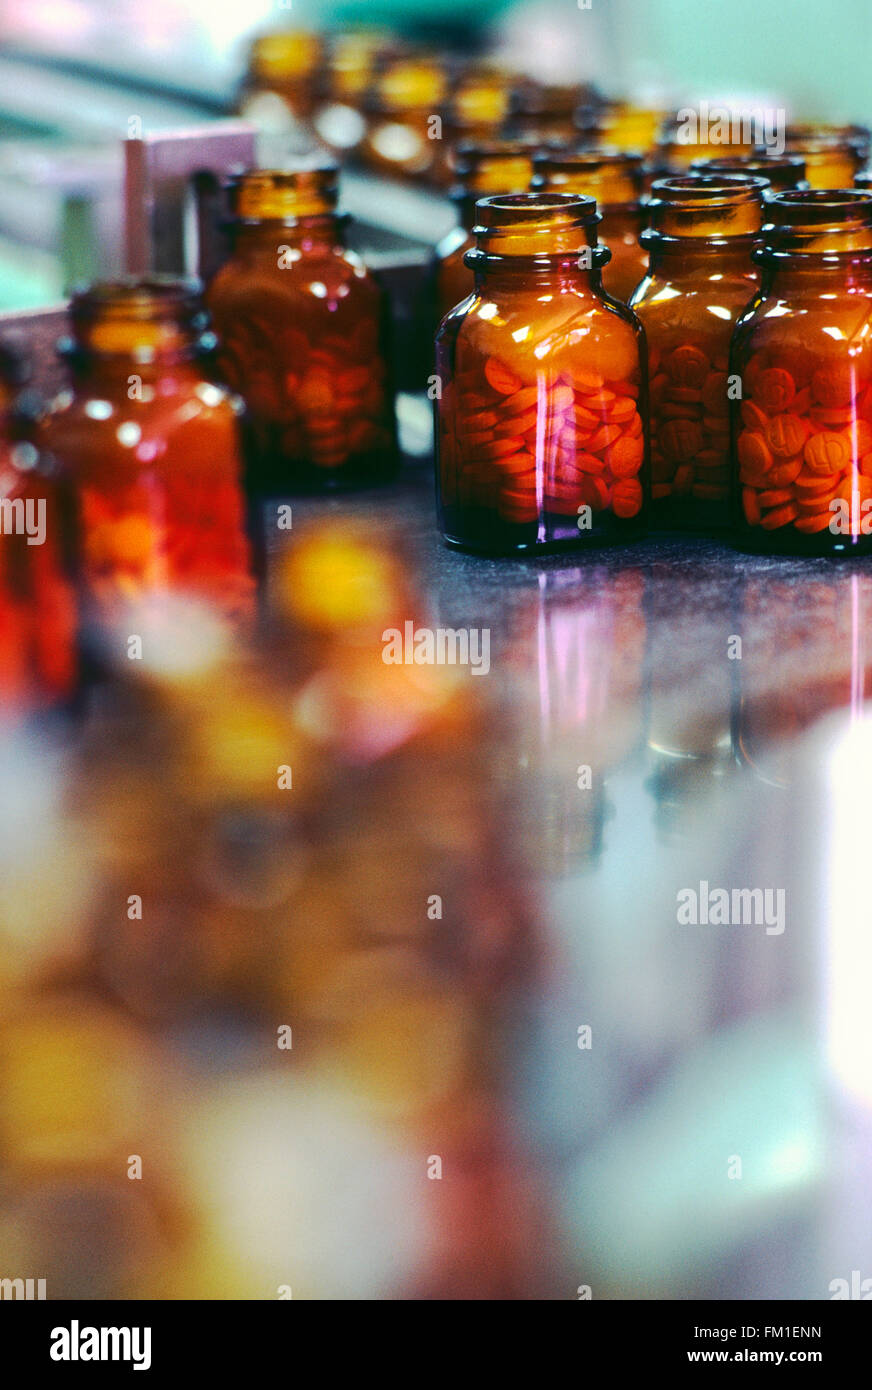 Bottled pills in manufacturing and packaging production line of pharmaceutical company - Stock Image